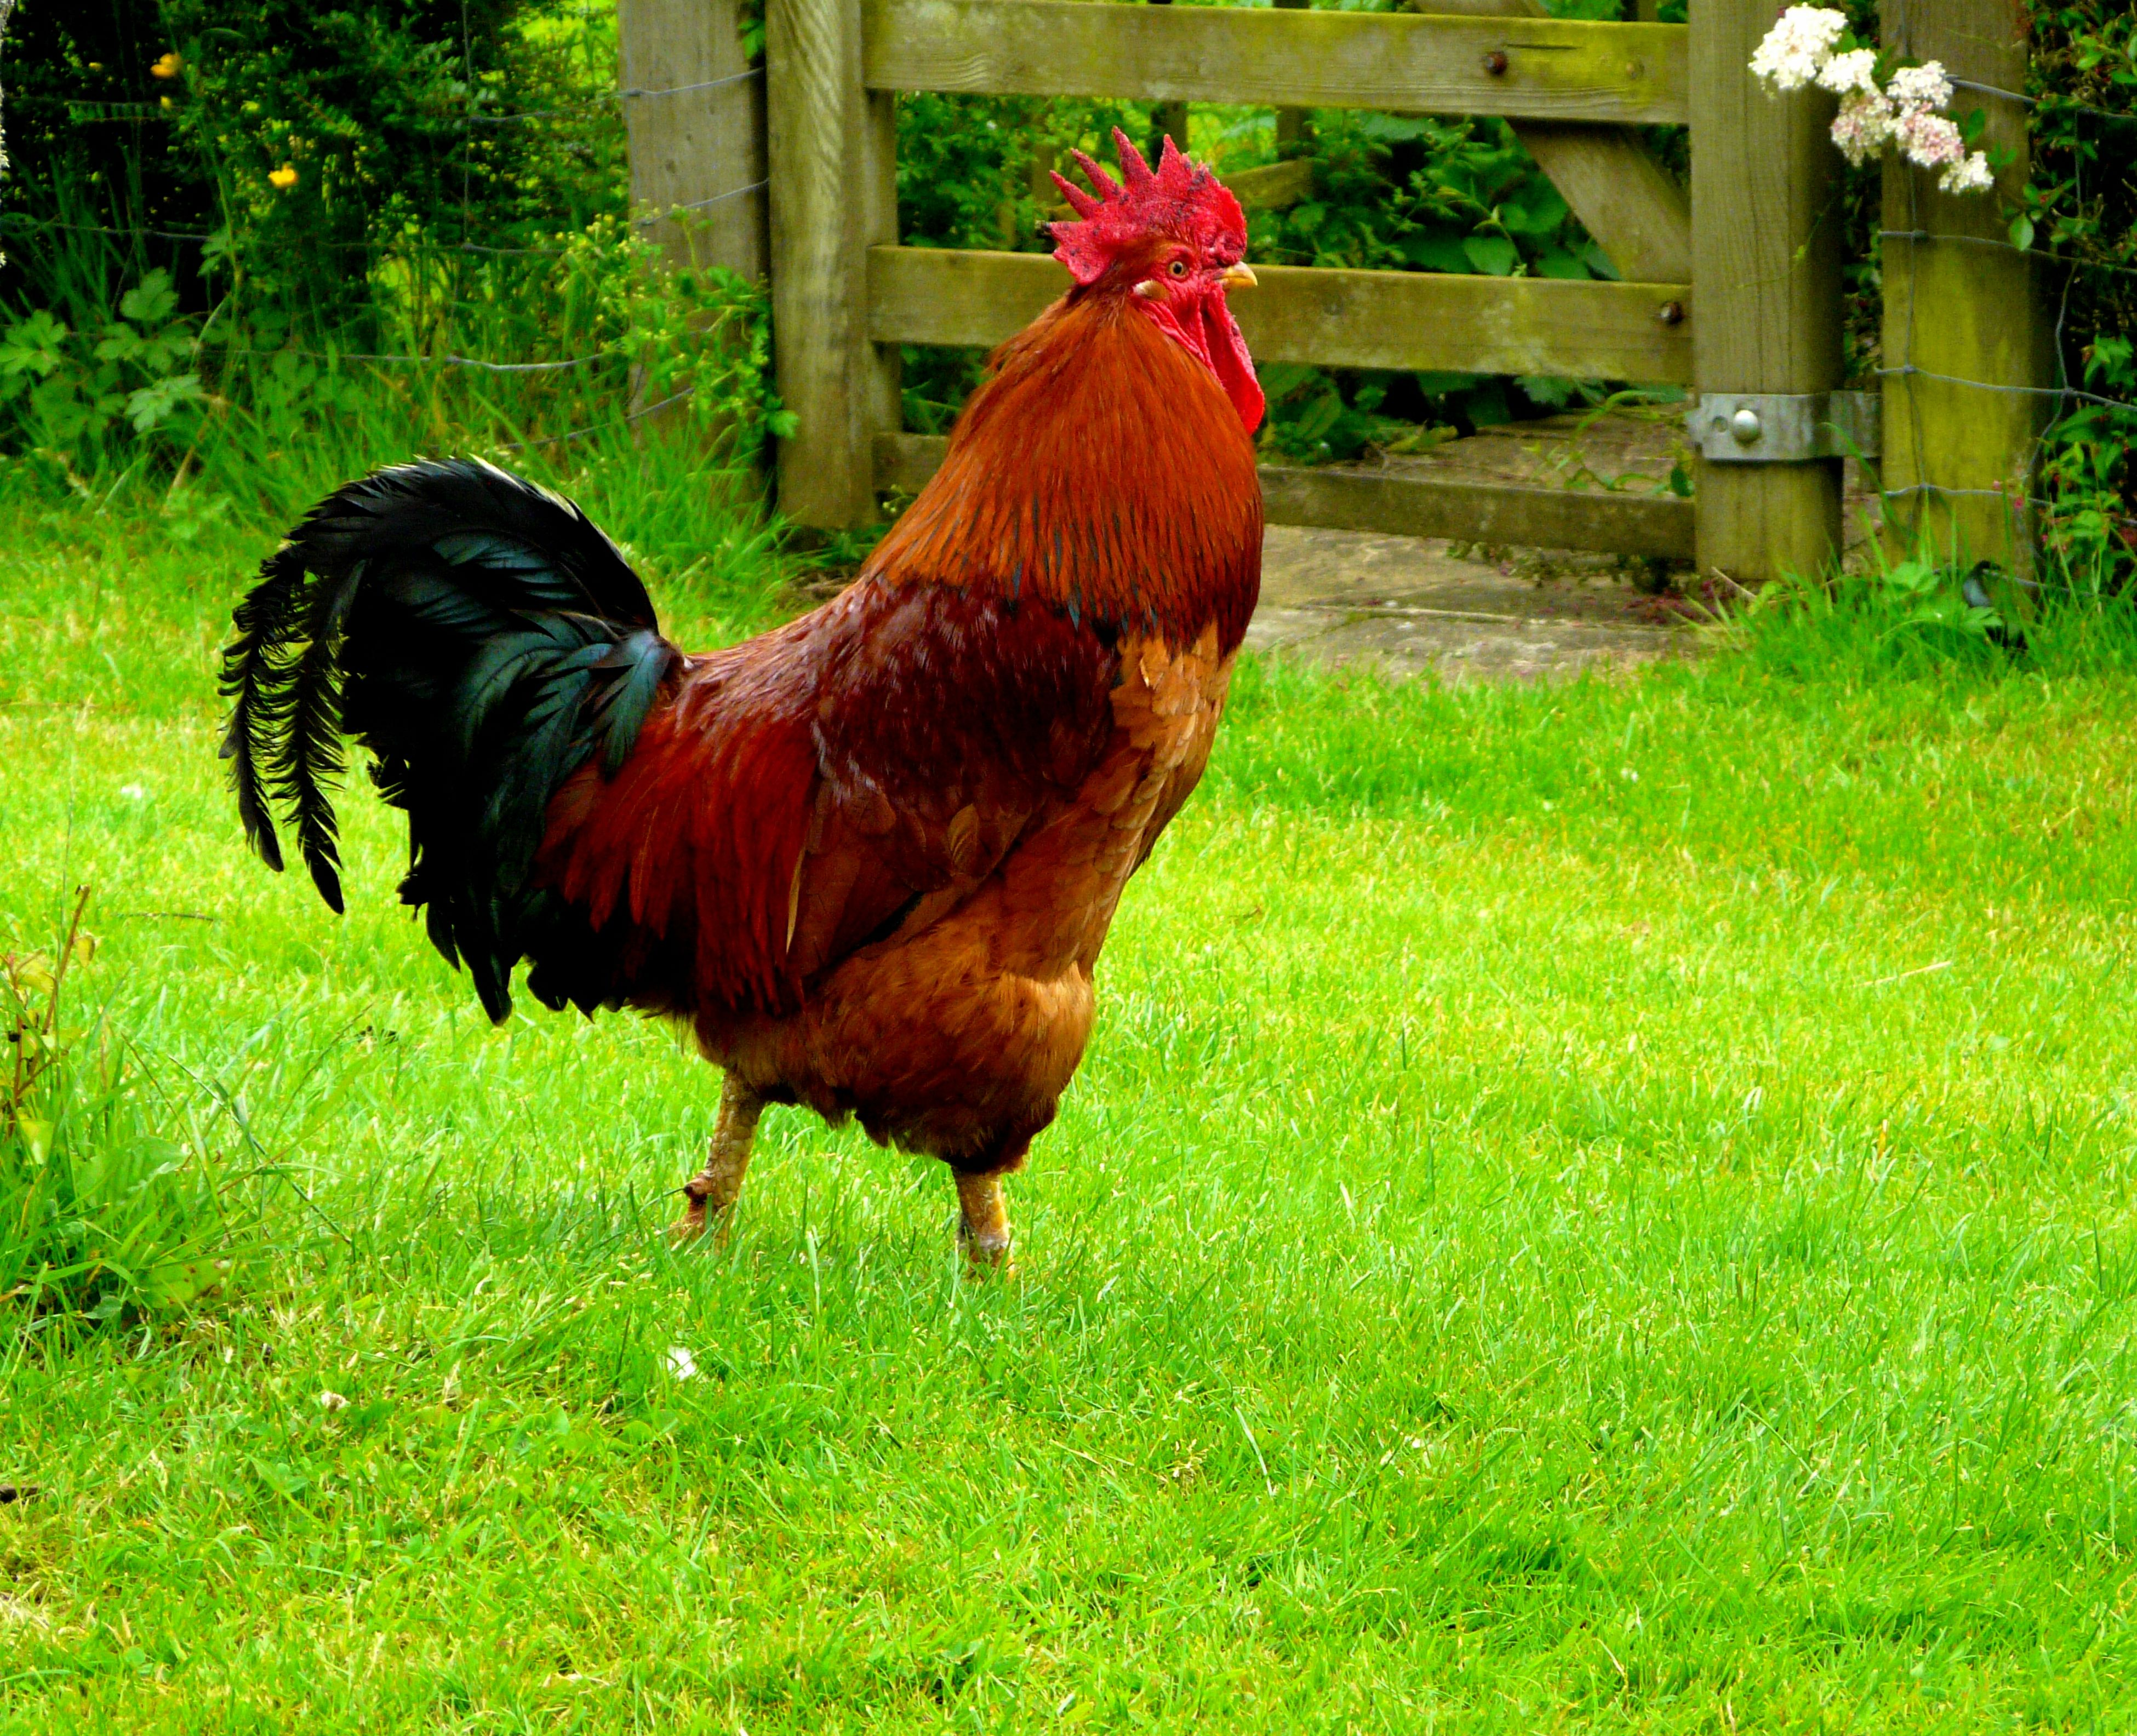 animal themes, livestock, grass, domestic animals, bird, chicken - bird, rooster, one animal, field, hen, grassy, mammal, fence, red, green color, cockerel, standing, nature, two animals, day